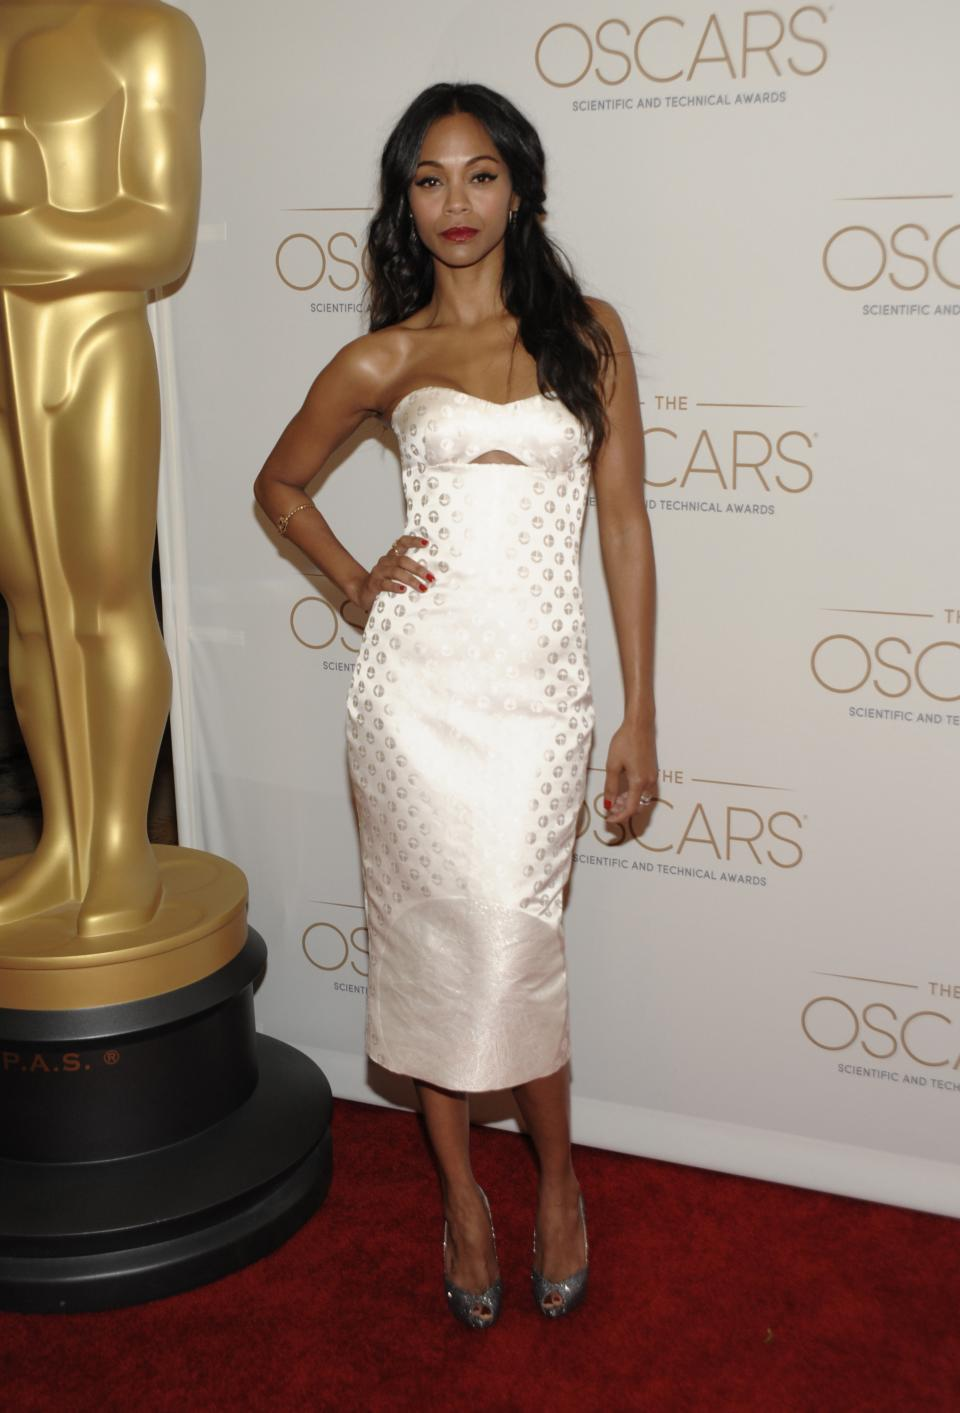 Actress and evening host Zoe Saldana arrives at The Academy of Motion Picture Arts and Sciences, Scientific and Technical Awards at The Beverly Hills Hotel in Beverly Hills, Calif. on Saturday, Feb. 9, 2013. (Photo by Dan Steinberg/Invision/AP)